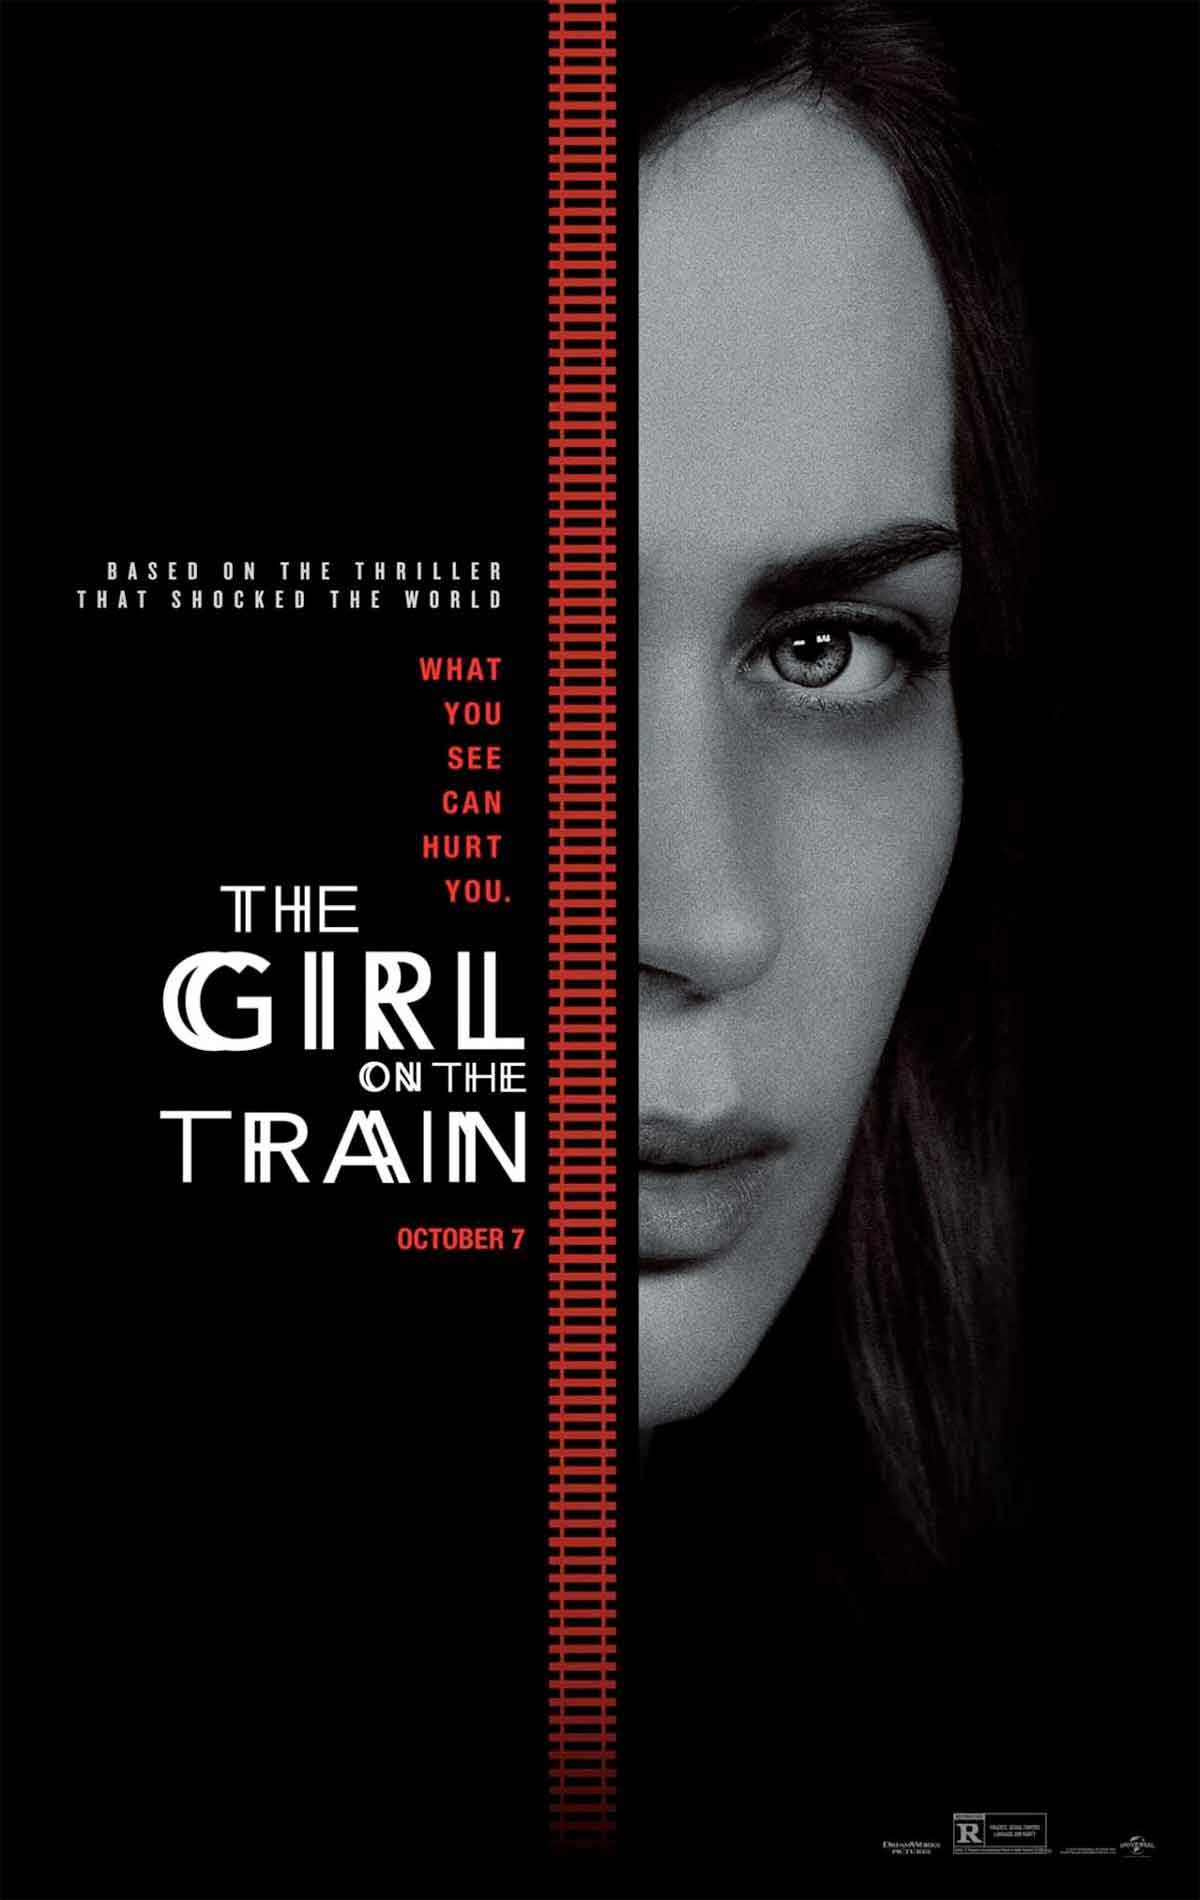 The Girl on the Train Fragman ve Afişi Yayınlandı